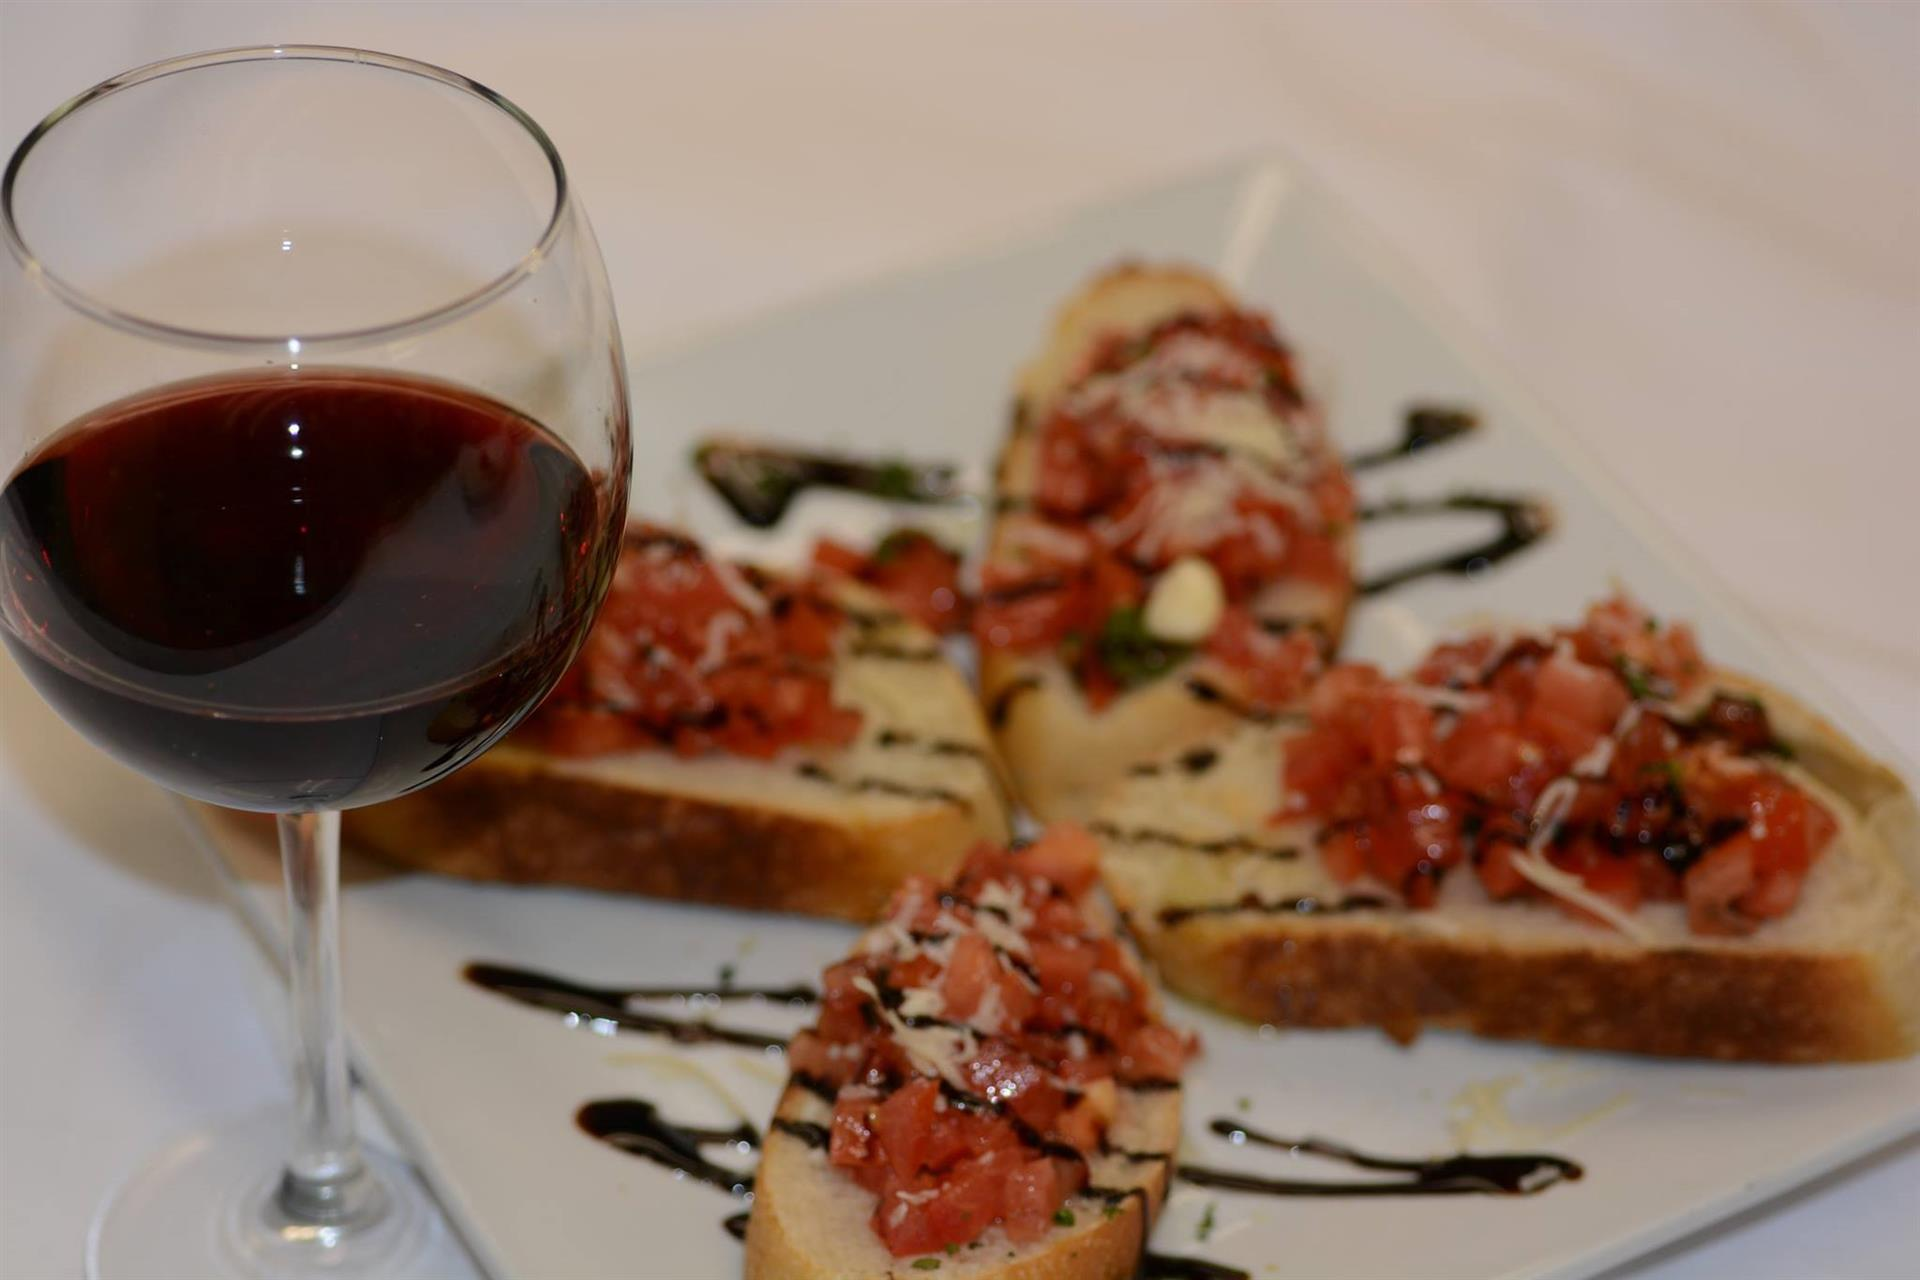 glass of red wine with bruschetta on a plate drizzled with balsamic glaze